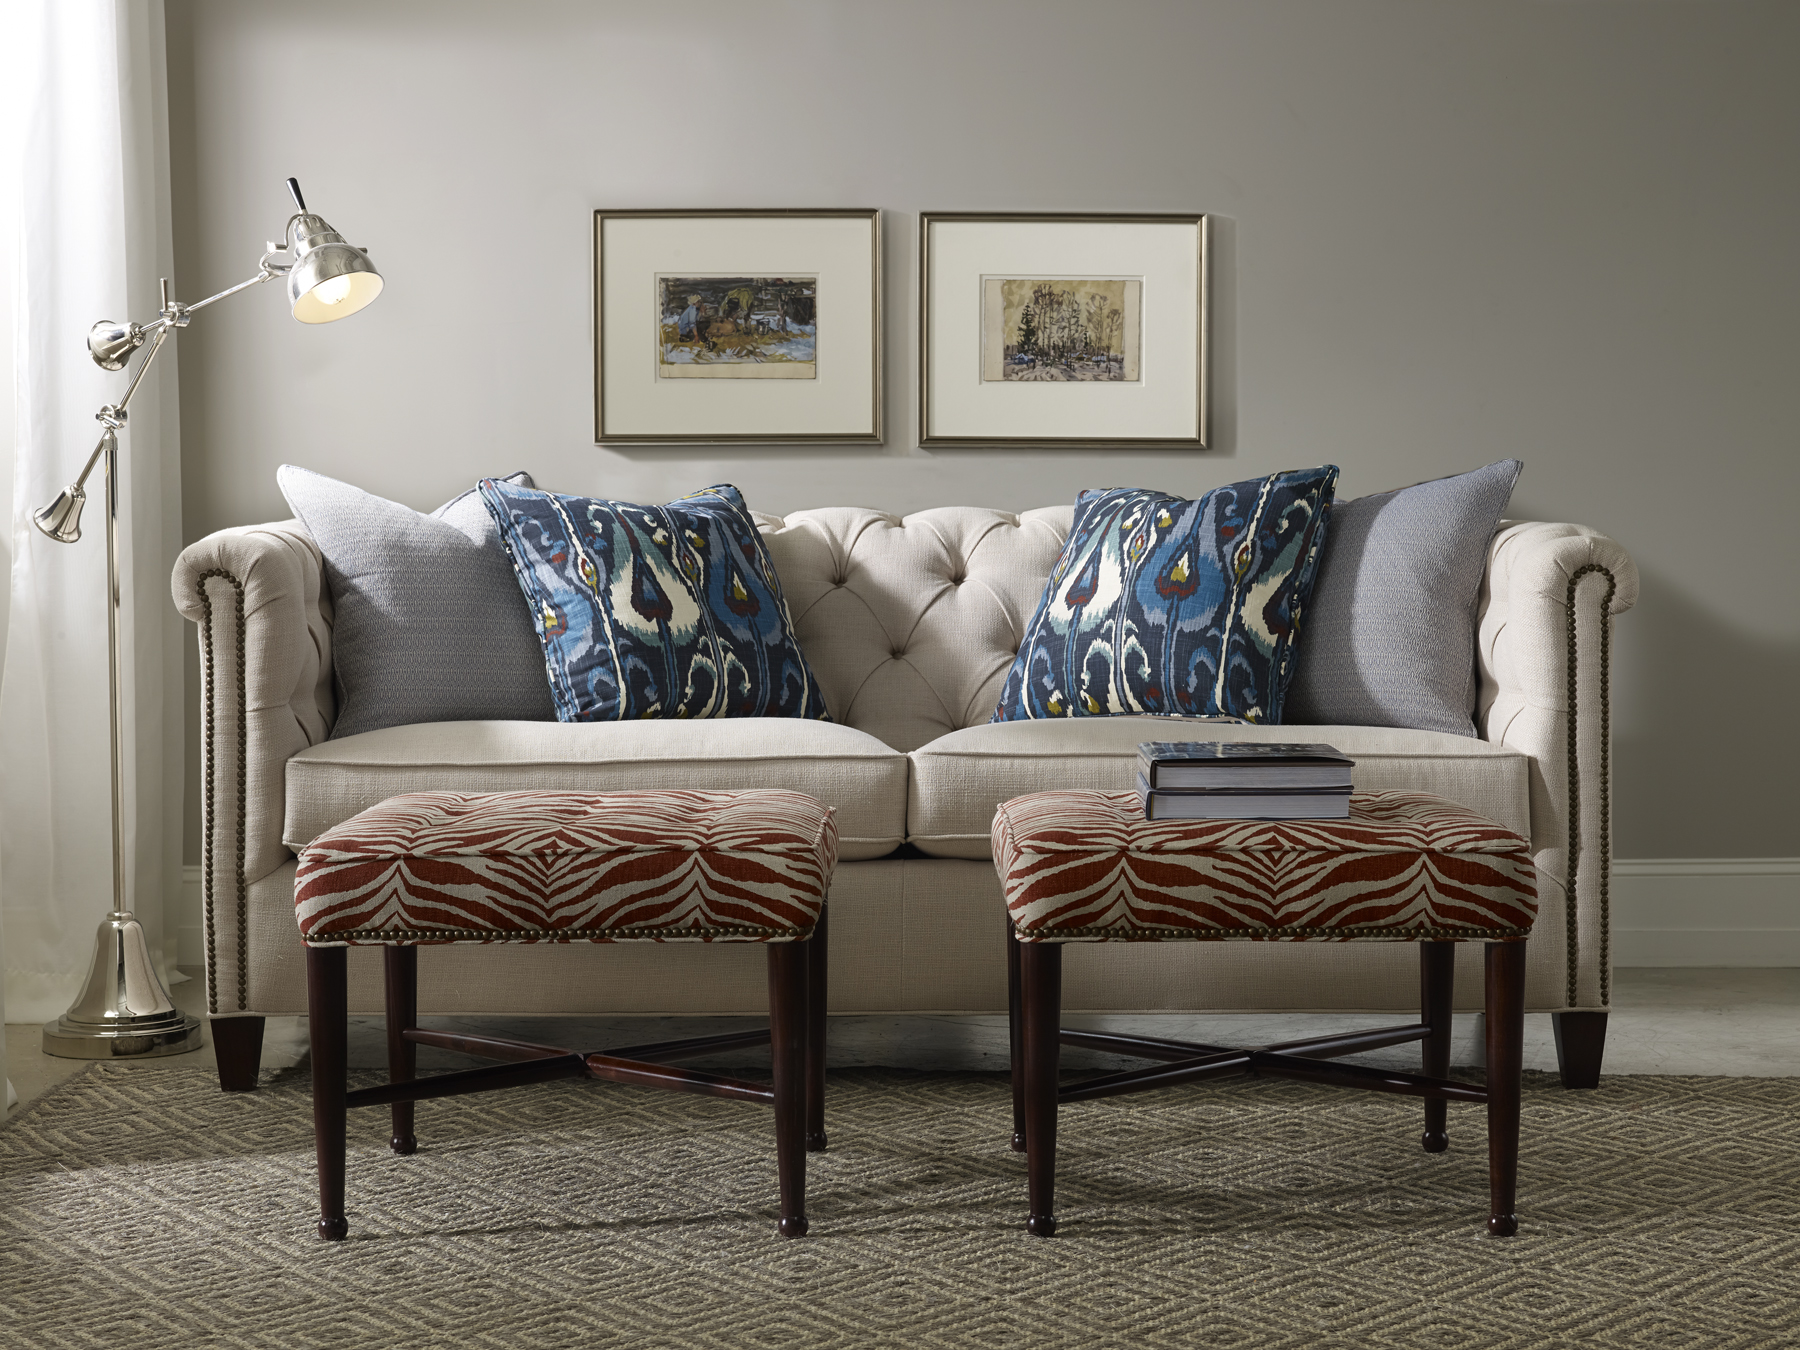 furniture motifs. Furniture Motifs. Ikats, Animal Prints Are Favorite Global Motifs N